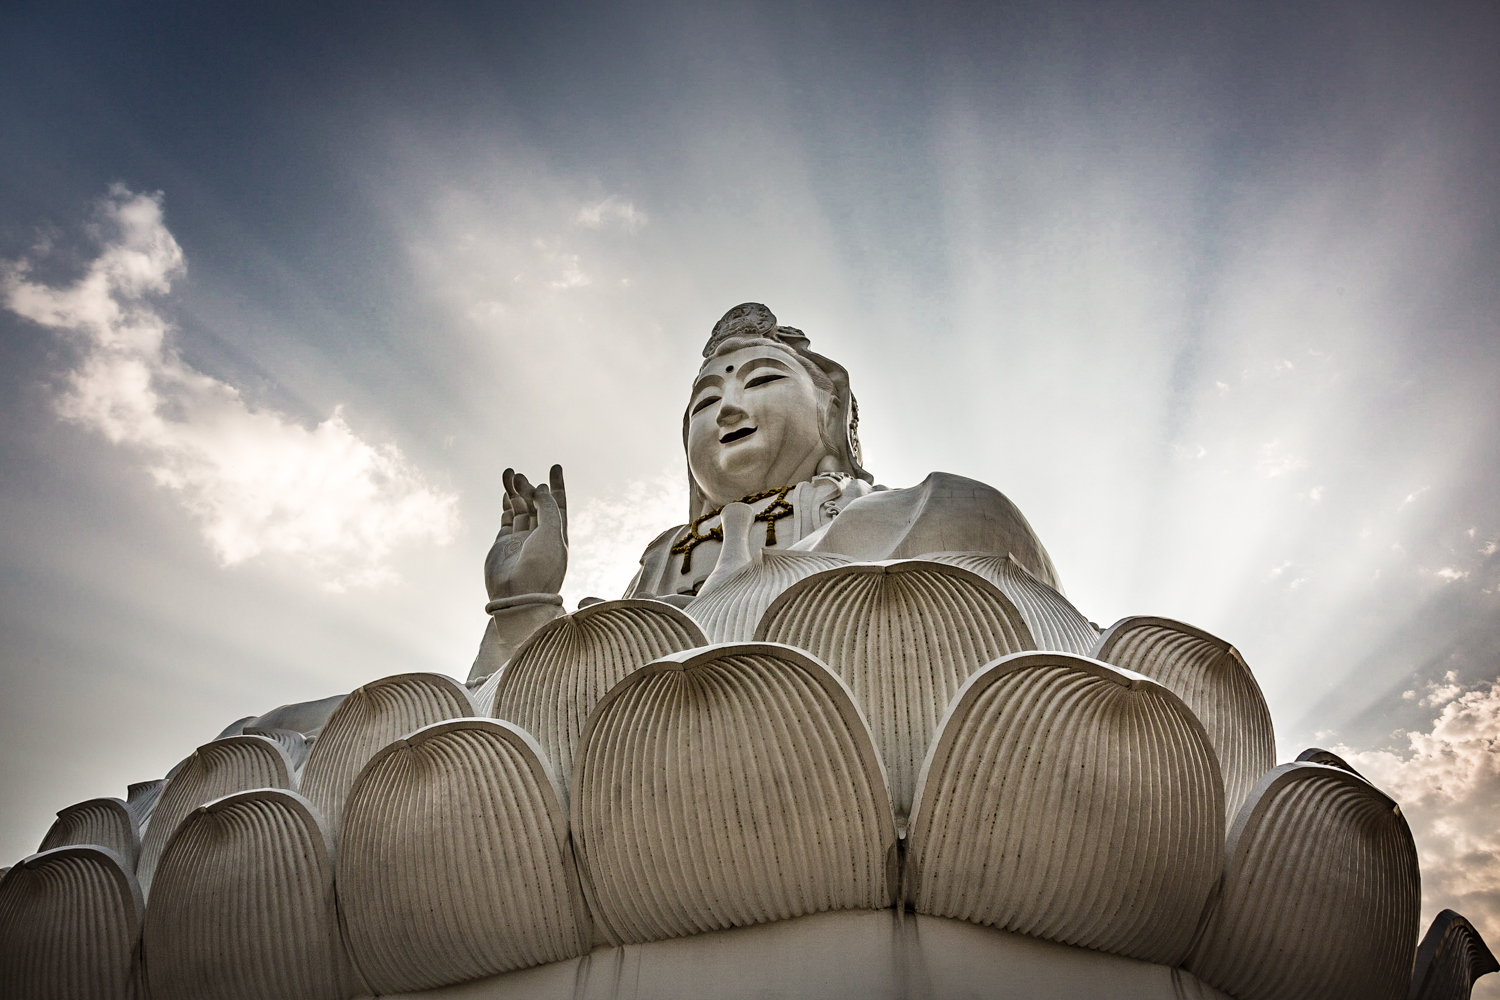 During my visit to the 40-story Buddha at Wat Huai Pla Kung, a break in the clouds occasioned these heavenly rays.